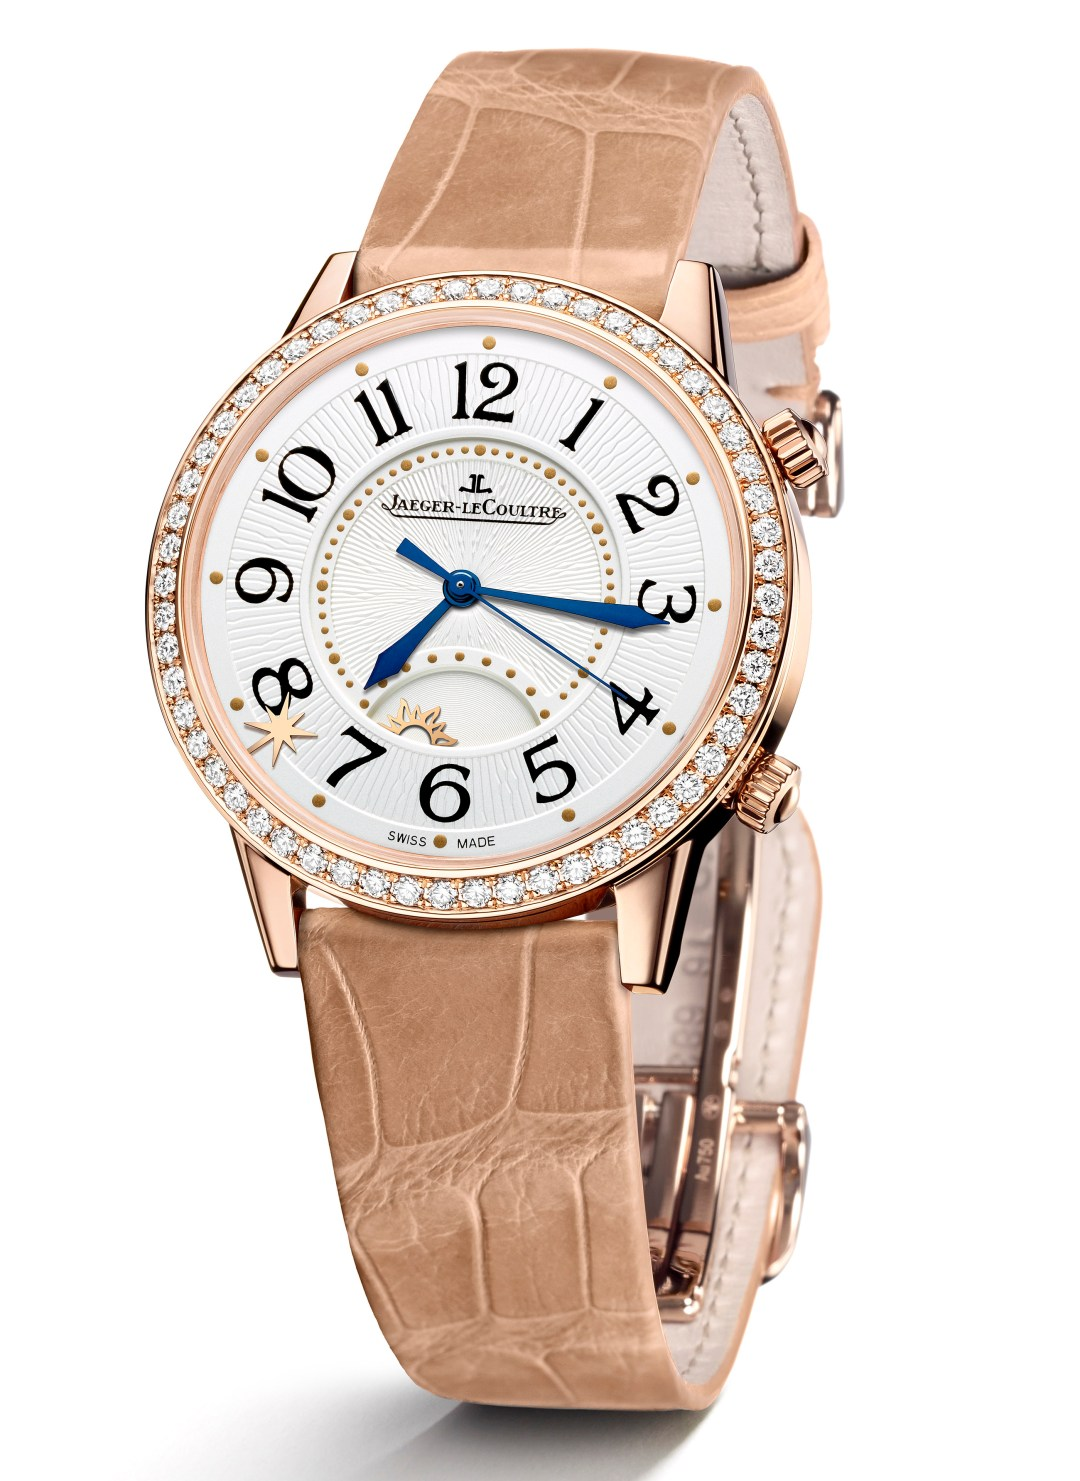 Jaeger-LeCoultre Rendez-Vous Sonatina Large in pink gold copy